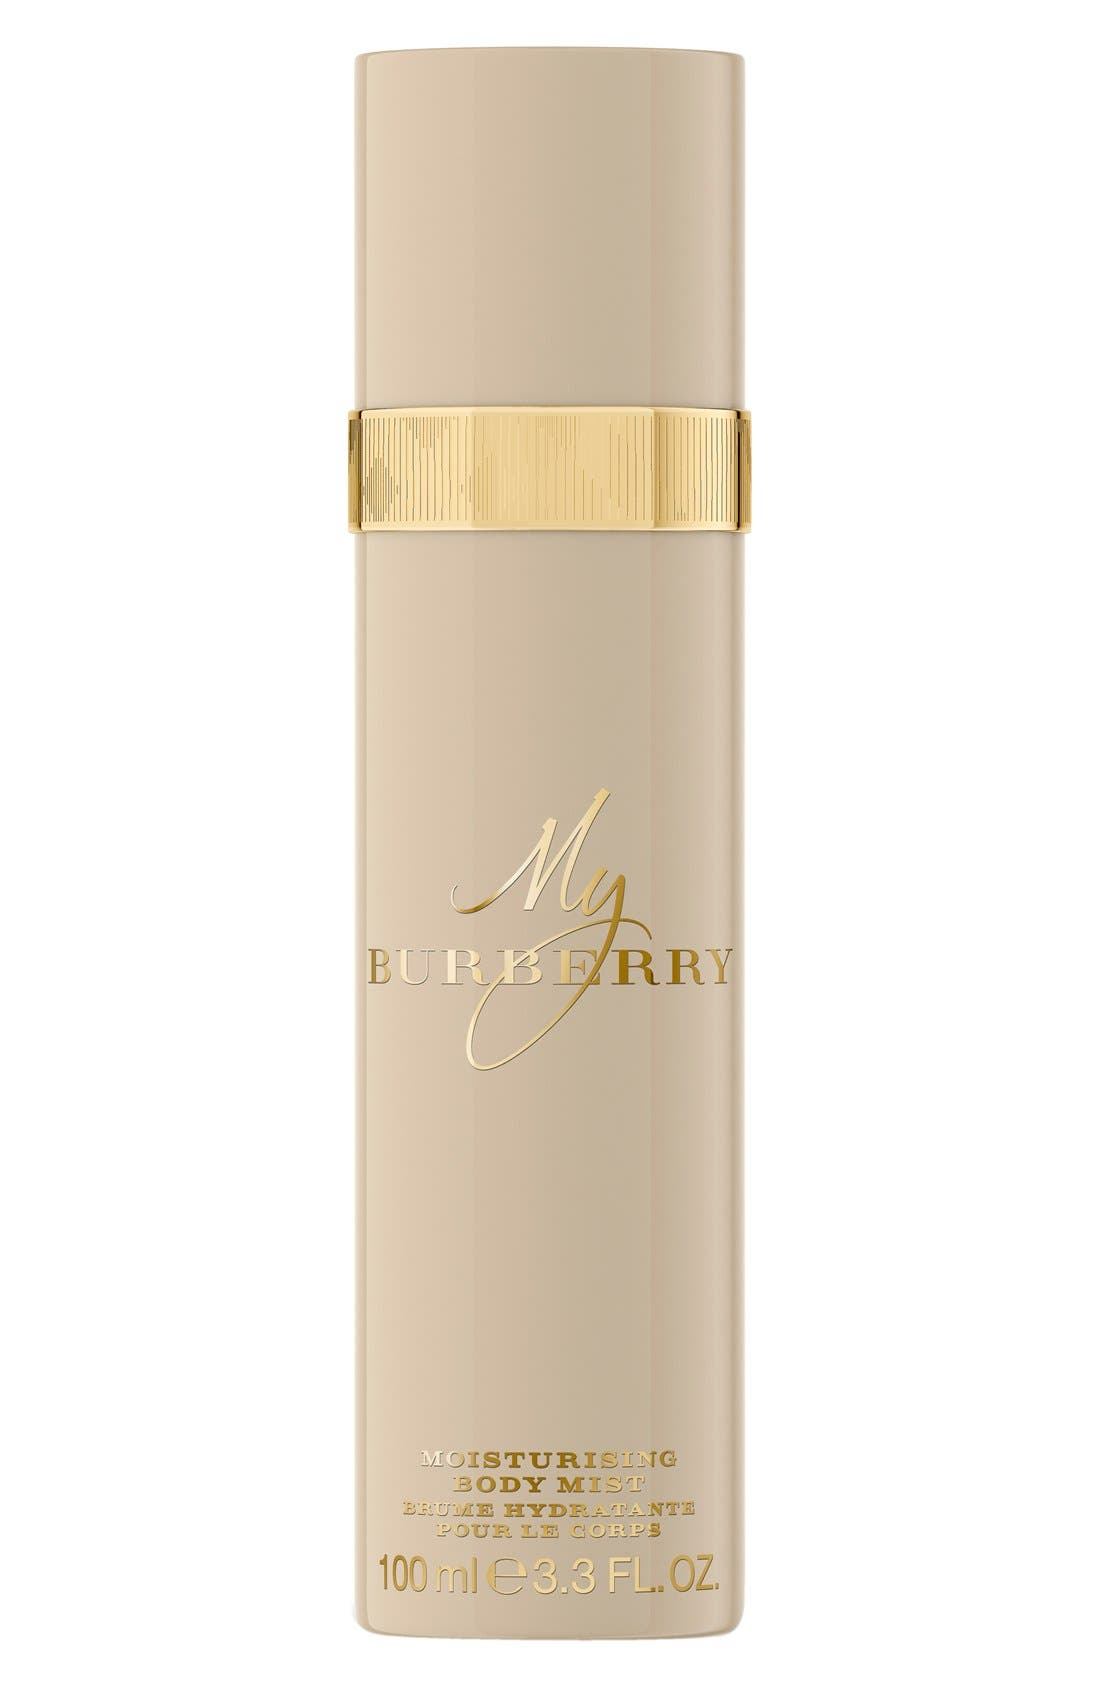 Burberry 'My Burberry' Moisturizing Body Mist,                             Main thumbnail 1, color,                             000